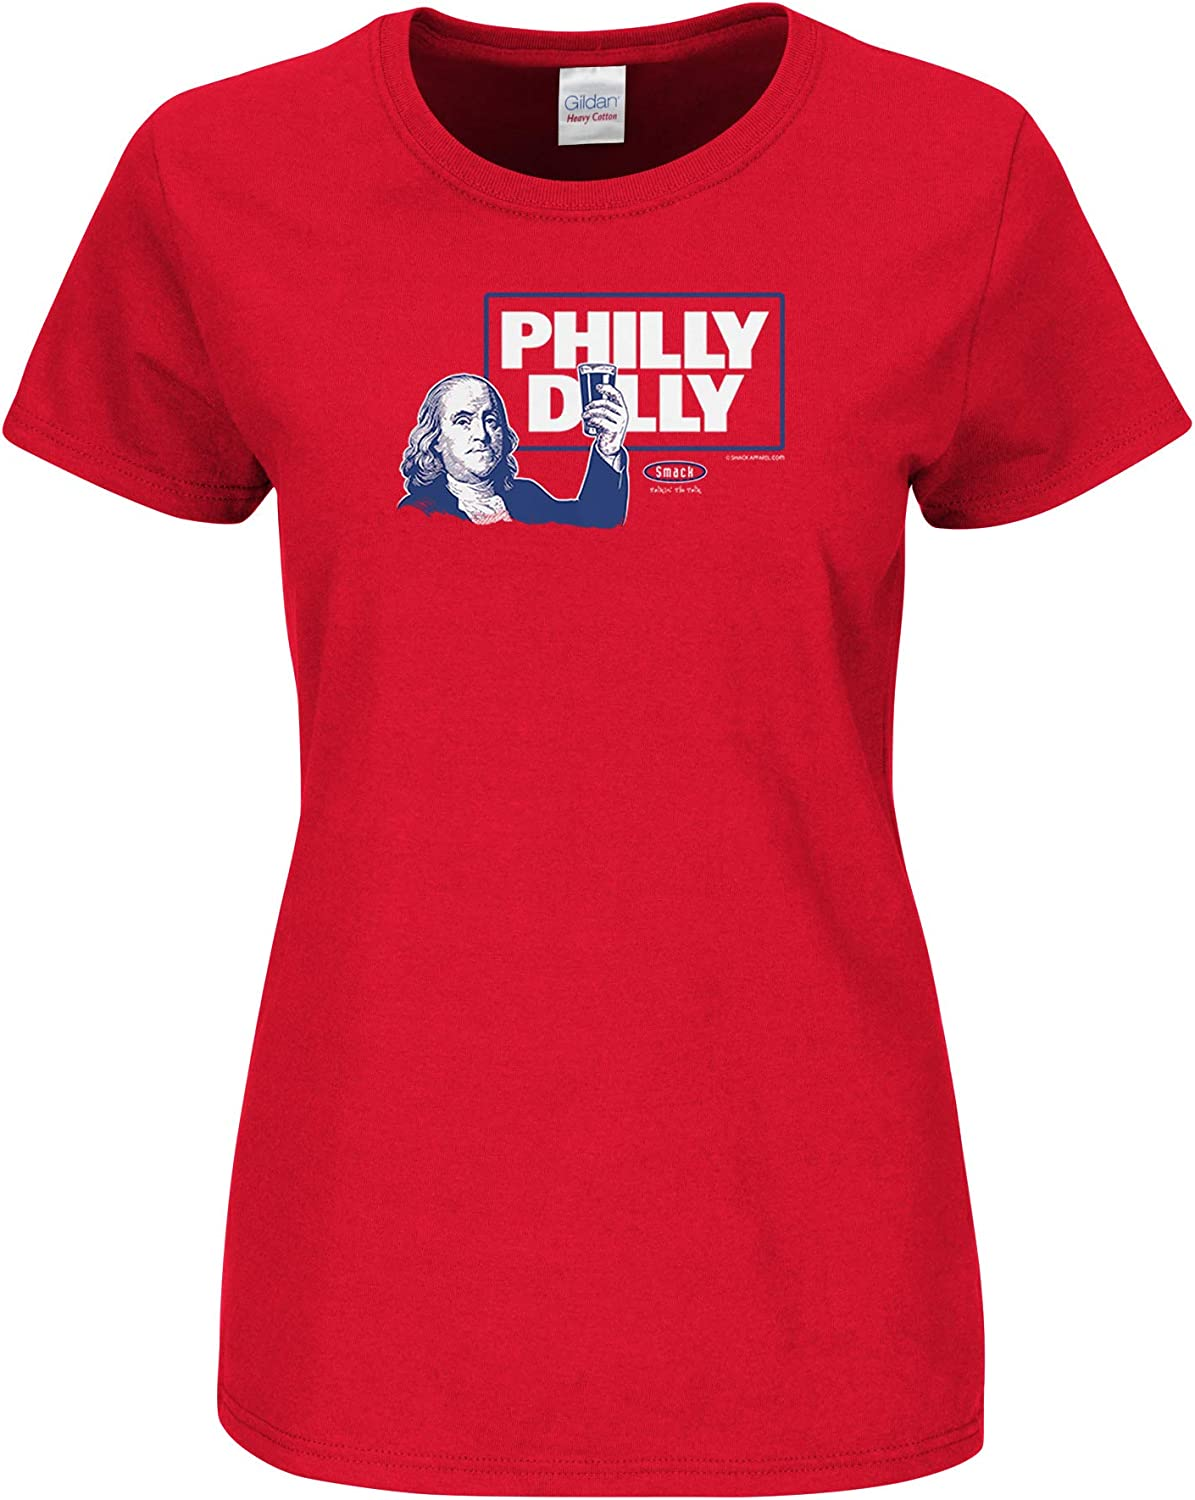 Philly Dilly Red Ladies Shirt Smack Apparel Philadelphia Baseball Fans Sm-2x